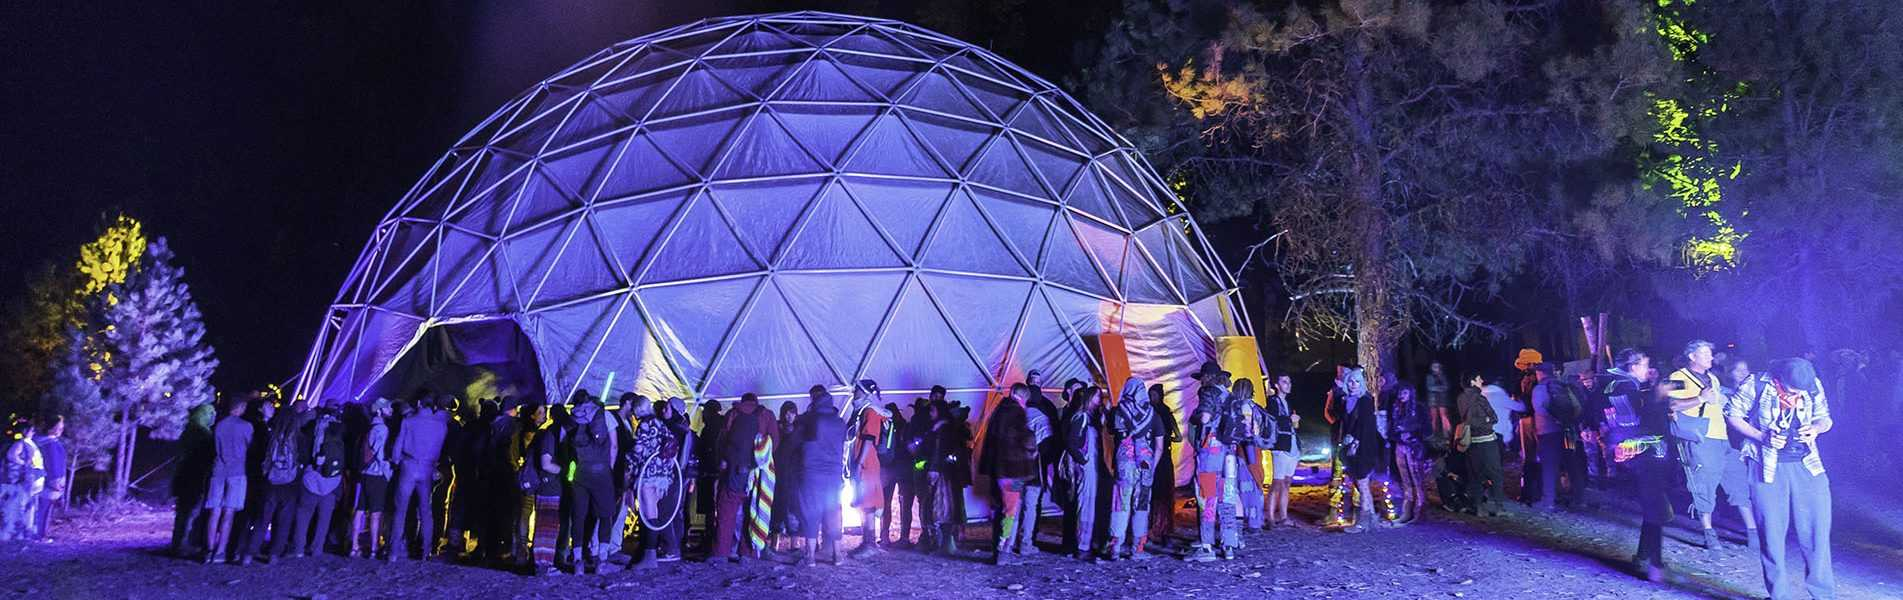 festival glamping domes